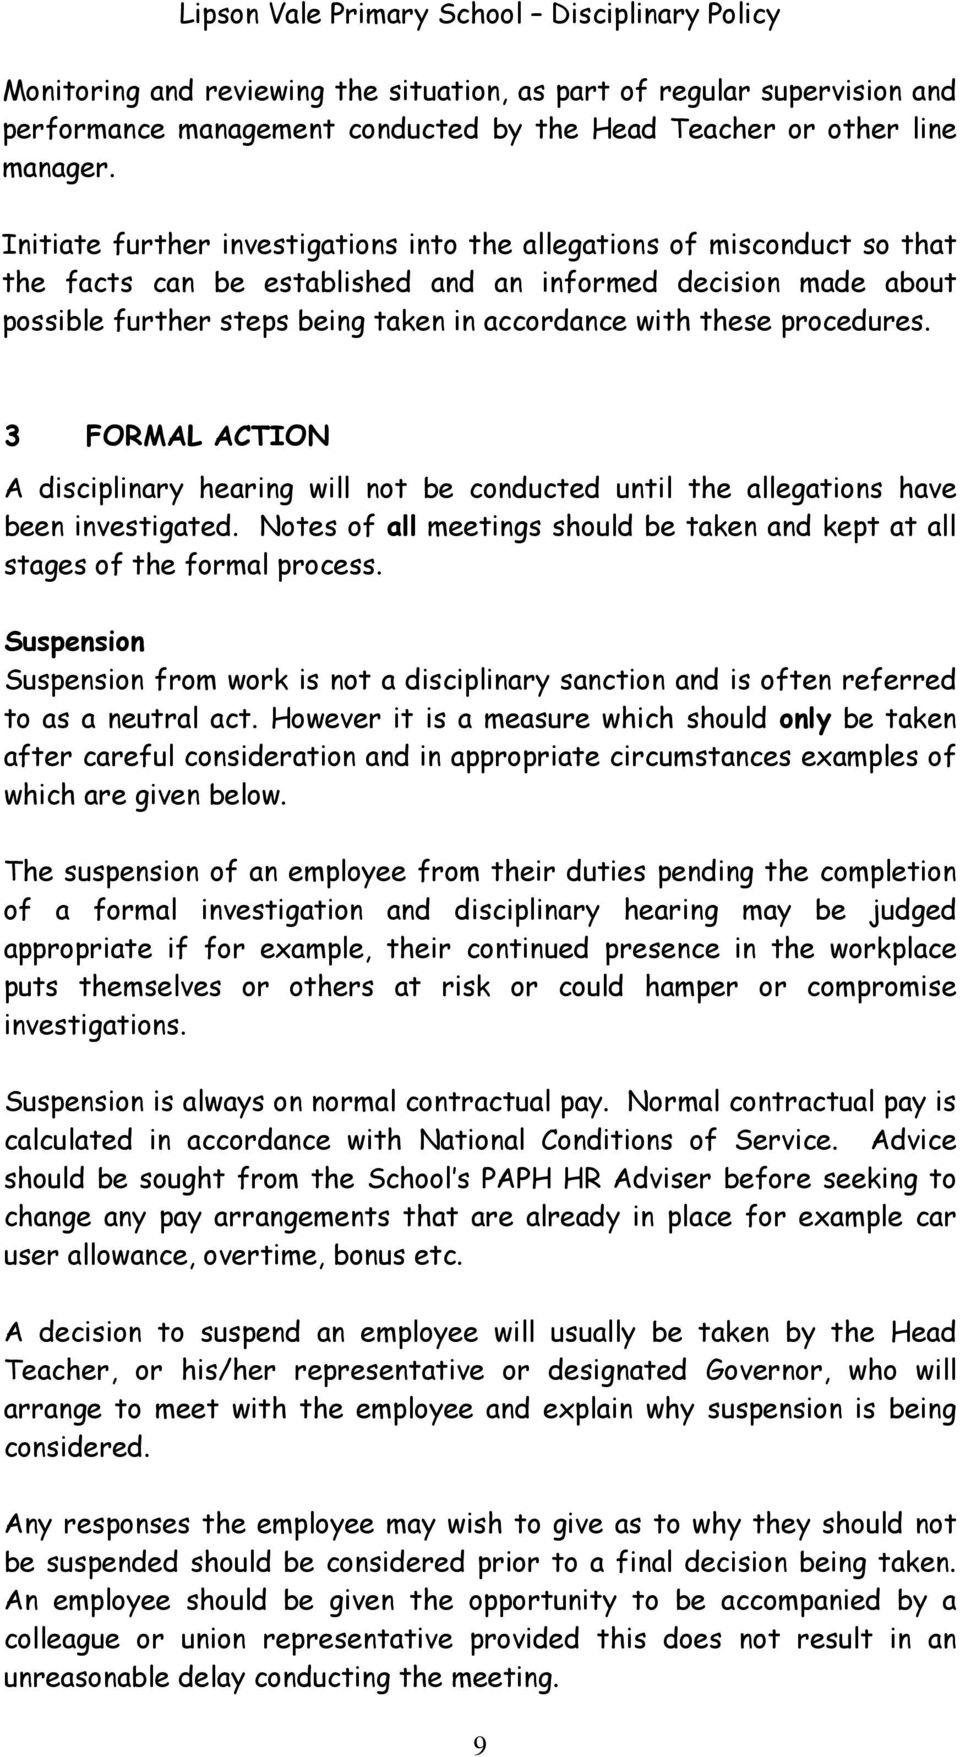 procedures. 3 FORMAL ACTION A disciplinary hearing will not be conducted until the allegations have been investigated.